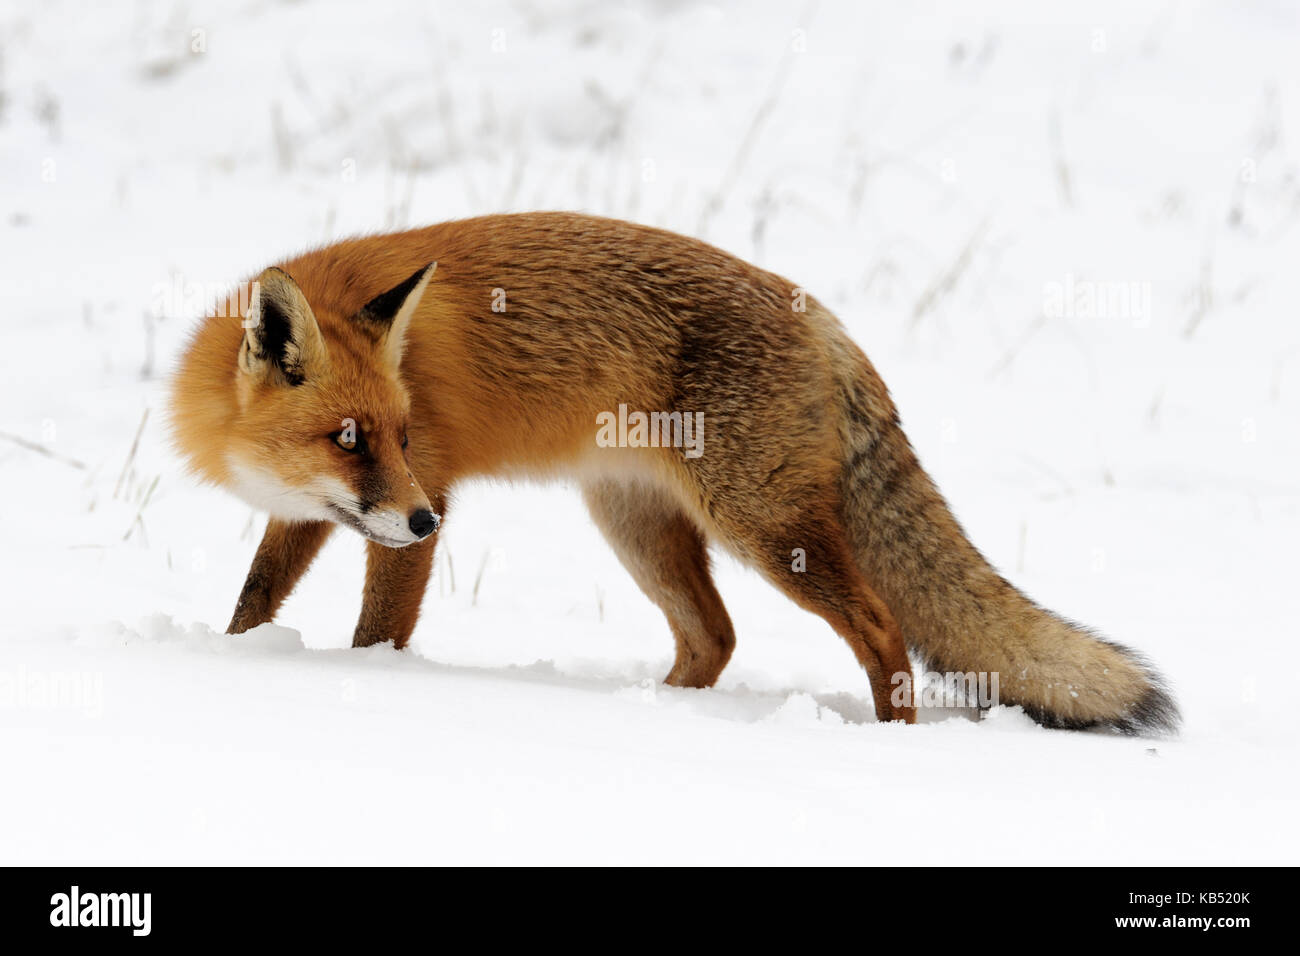 Red Fox (Vulpes vulpes) in snow, Noord-Holland, The Netherlands - Stock Image